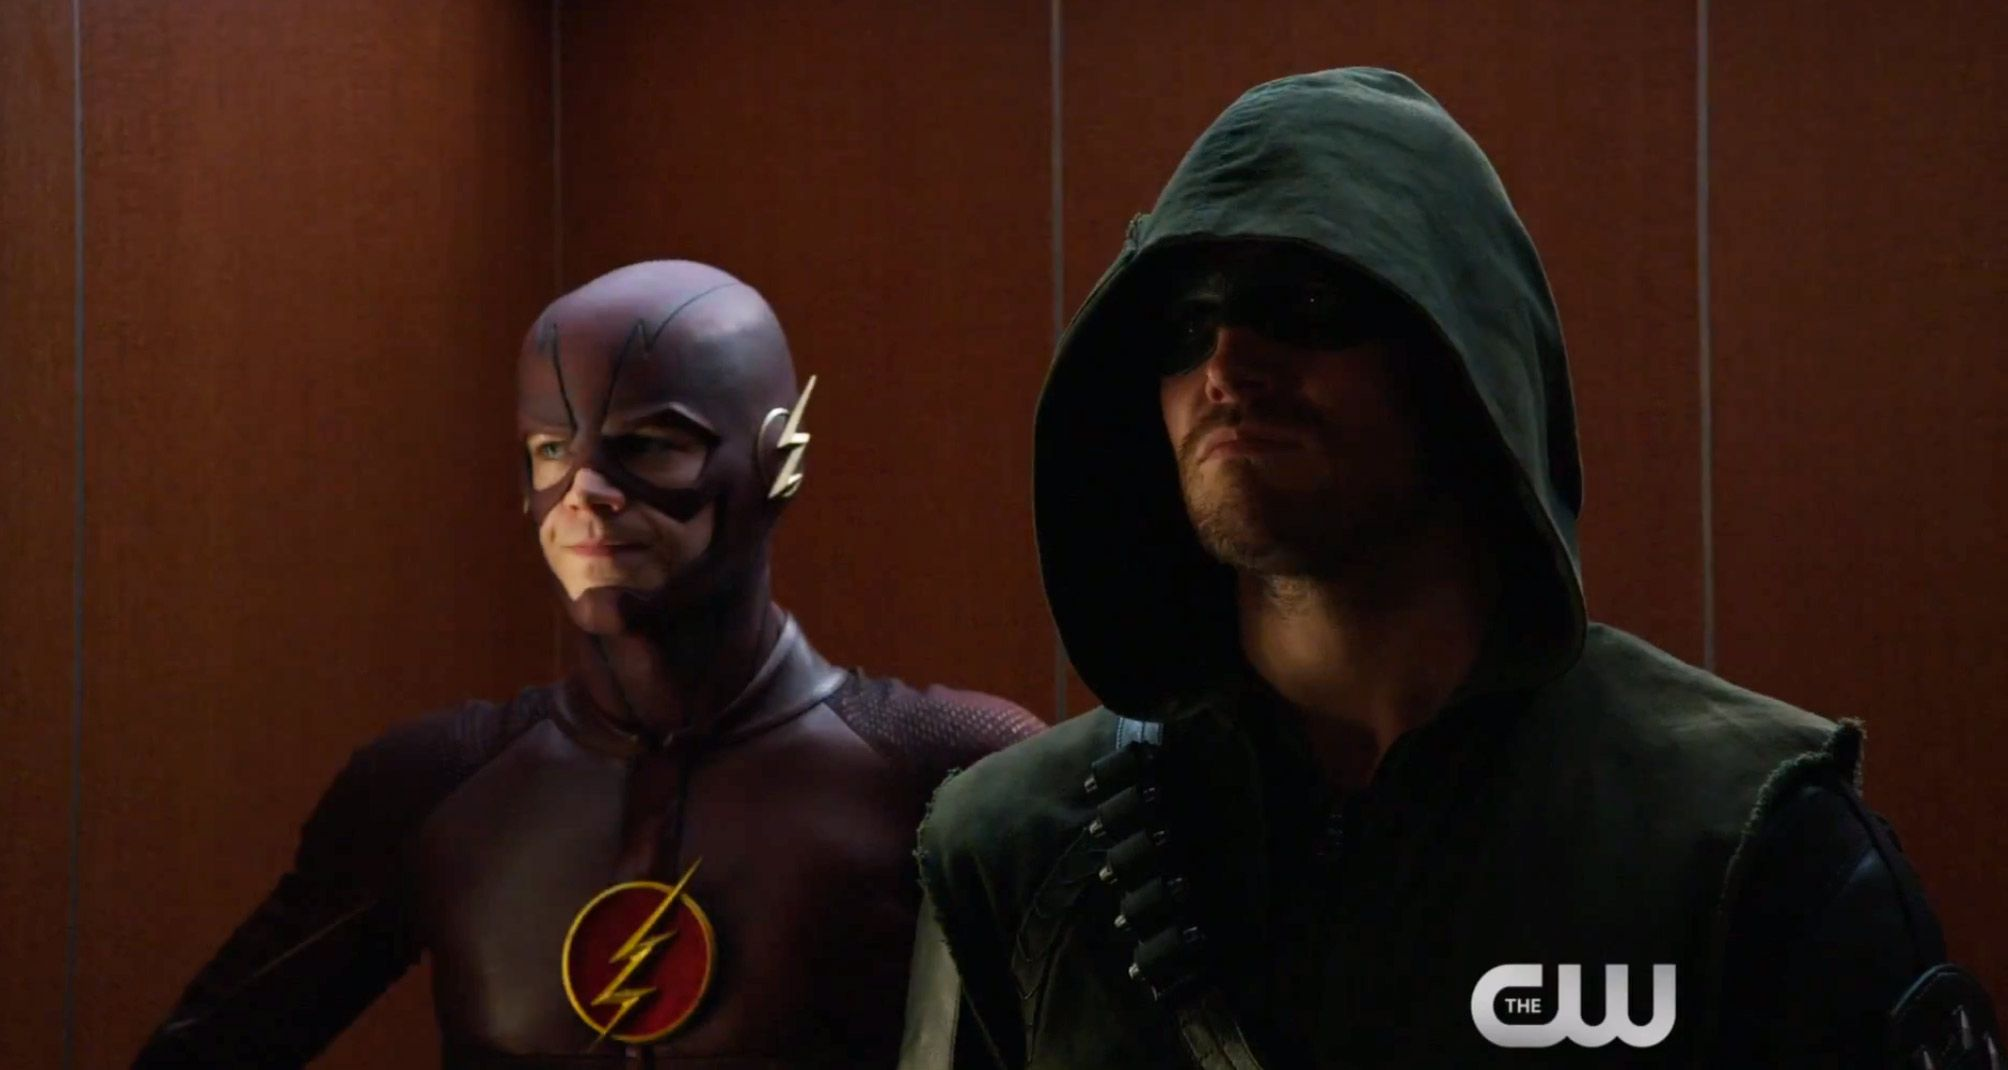 see the flash join superhero fight club